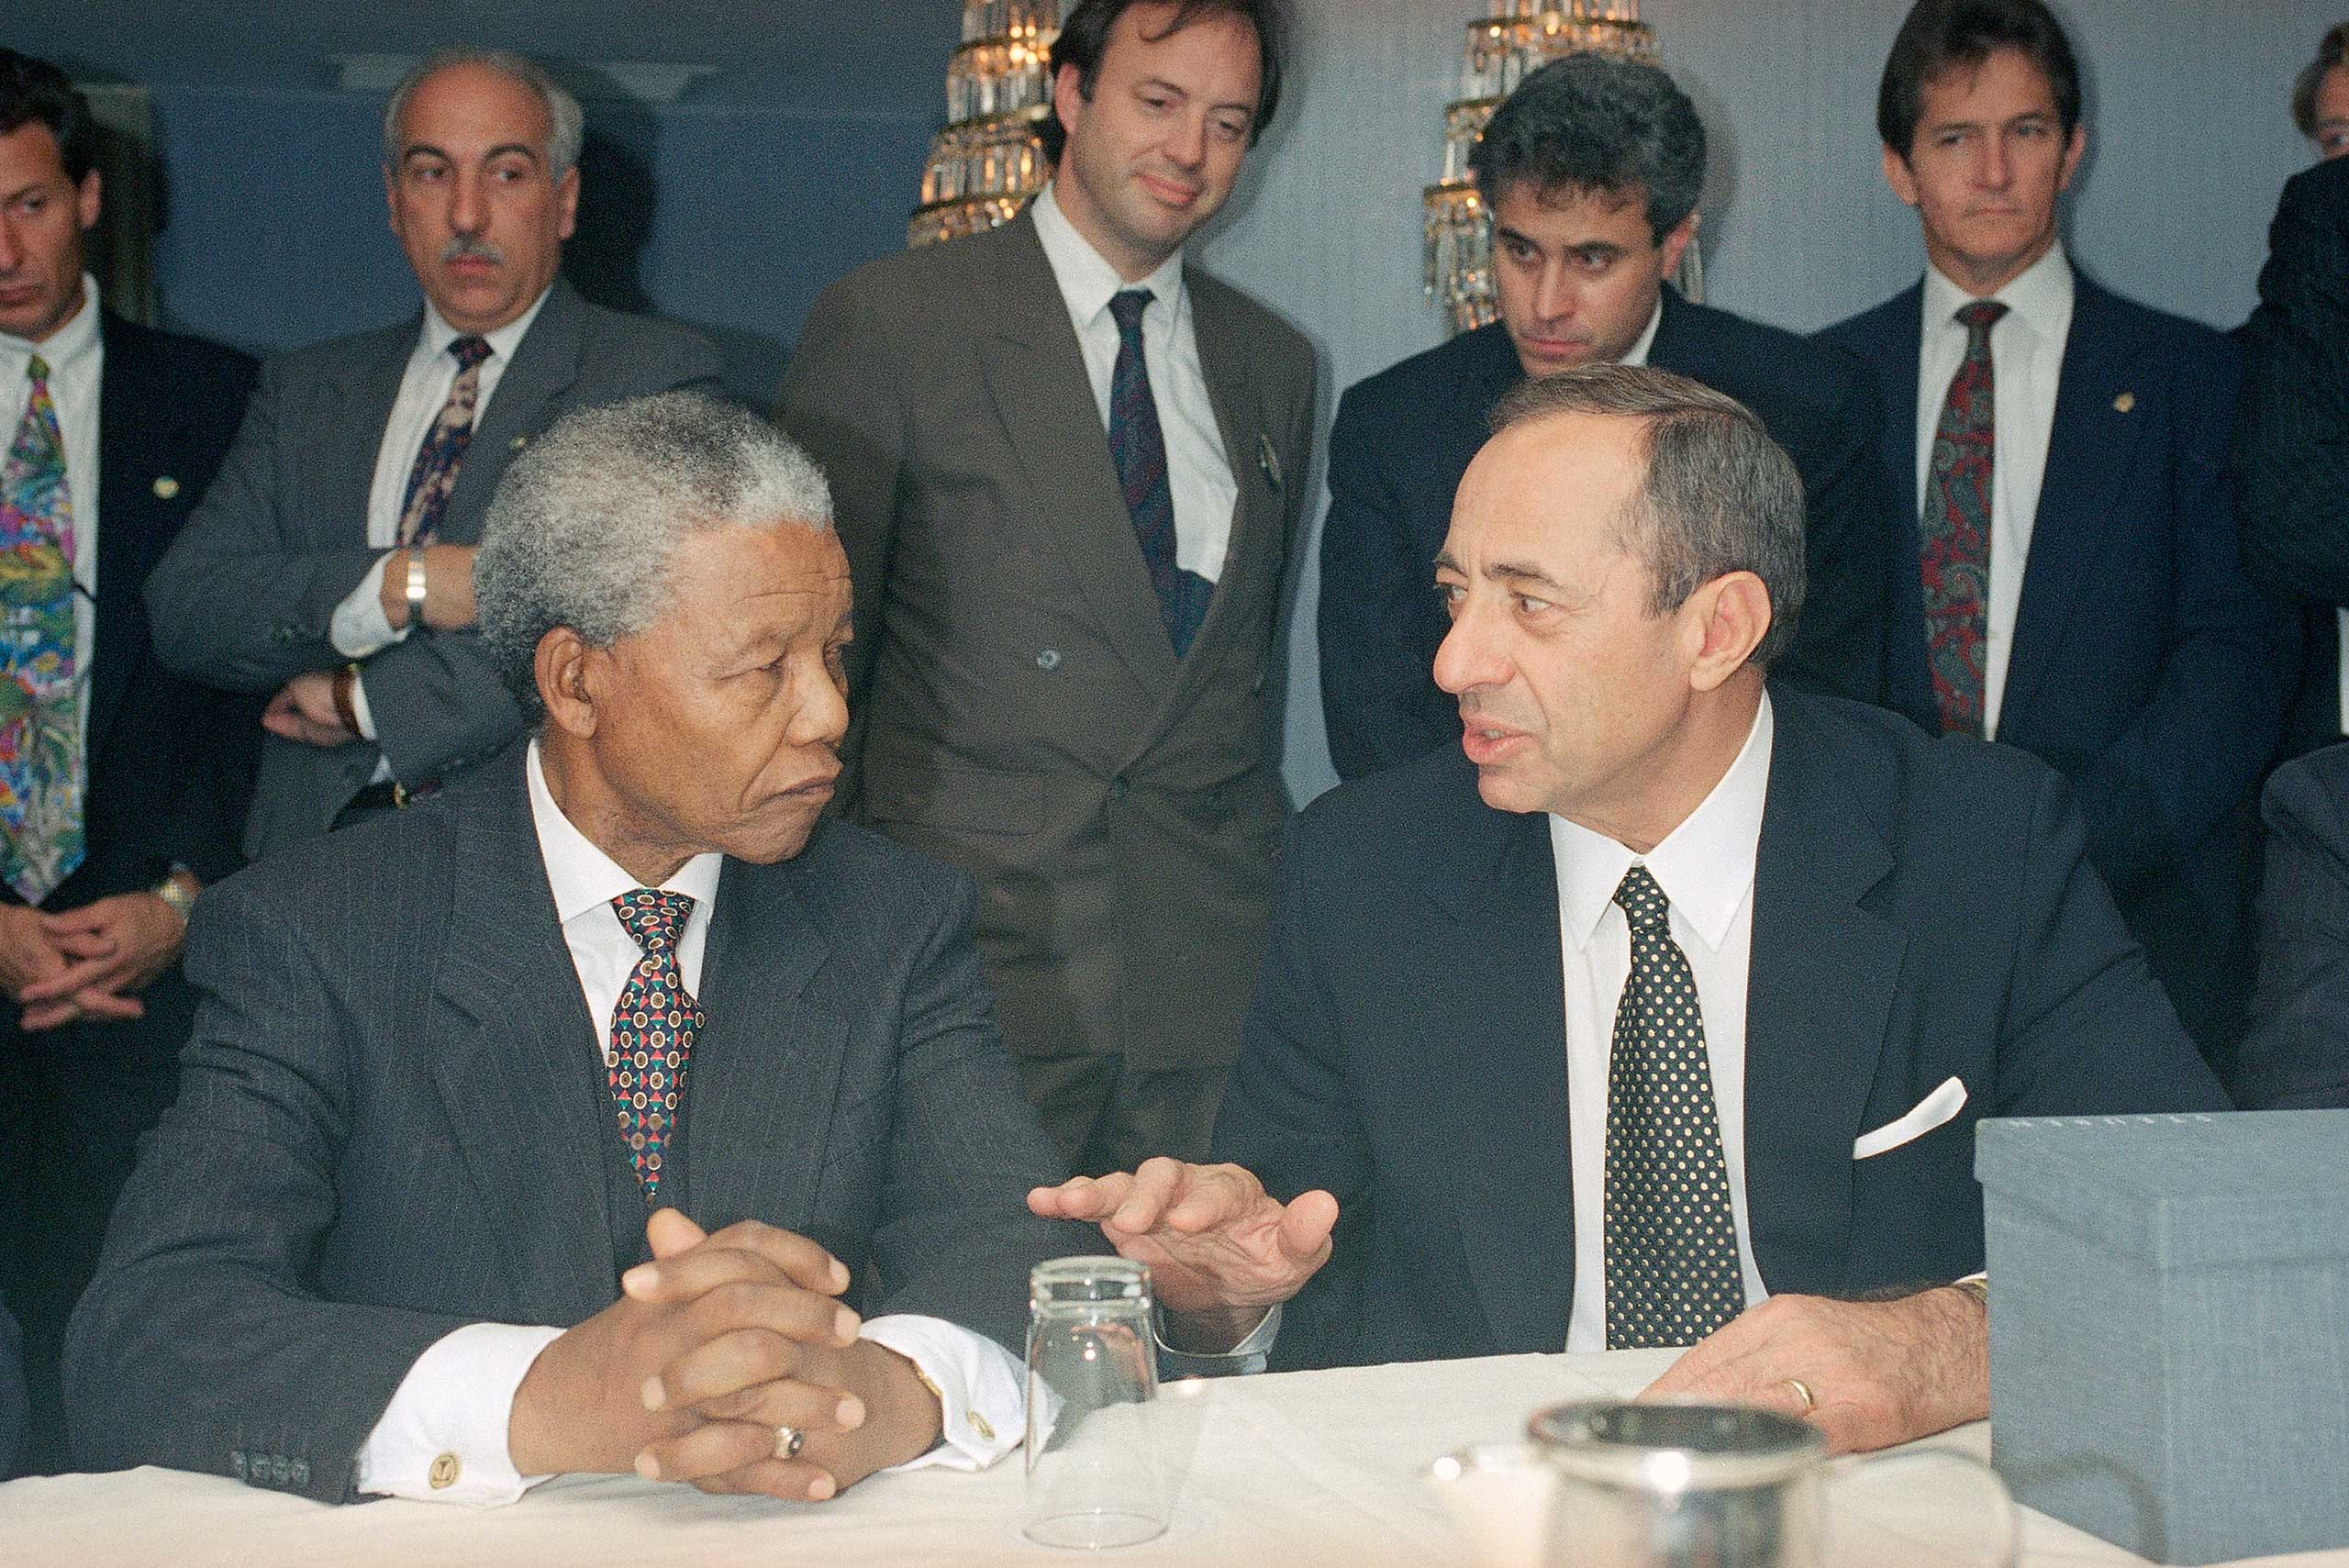 New York Governor Mario Cuomo, right, converses with South African President Nelson Mandela at the Inter-Continental Hotel in New York City on Oct. 2, 1994.